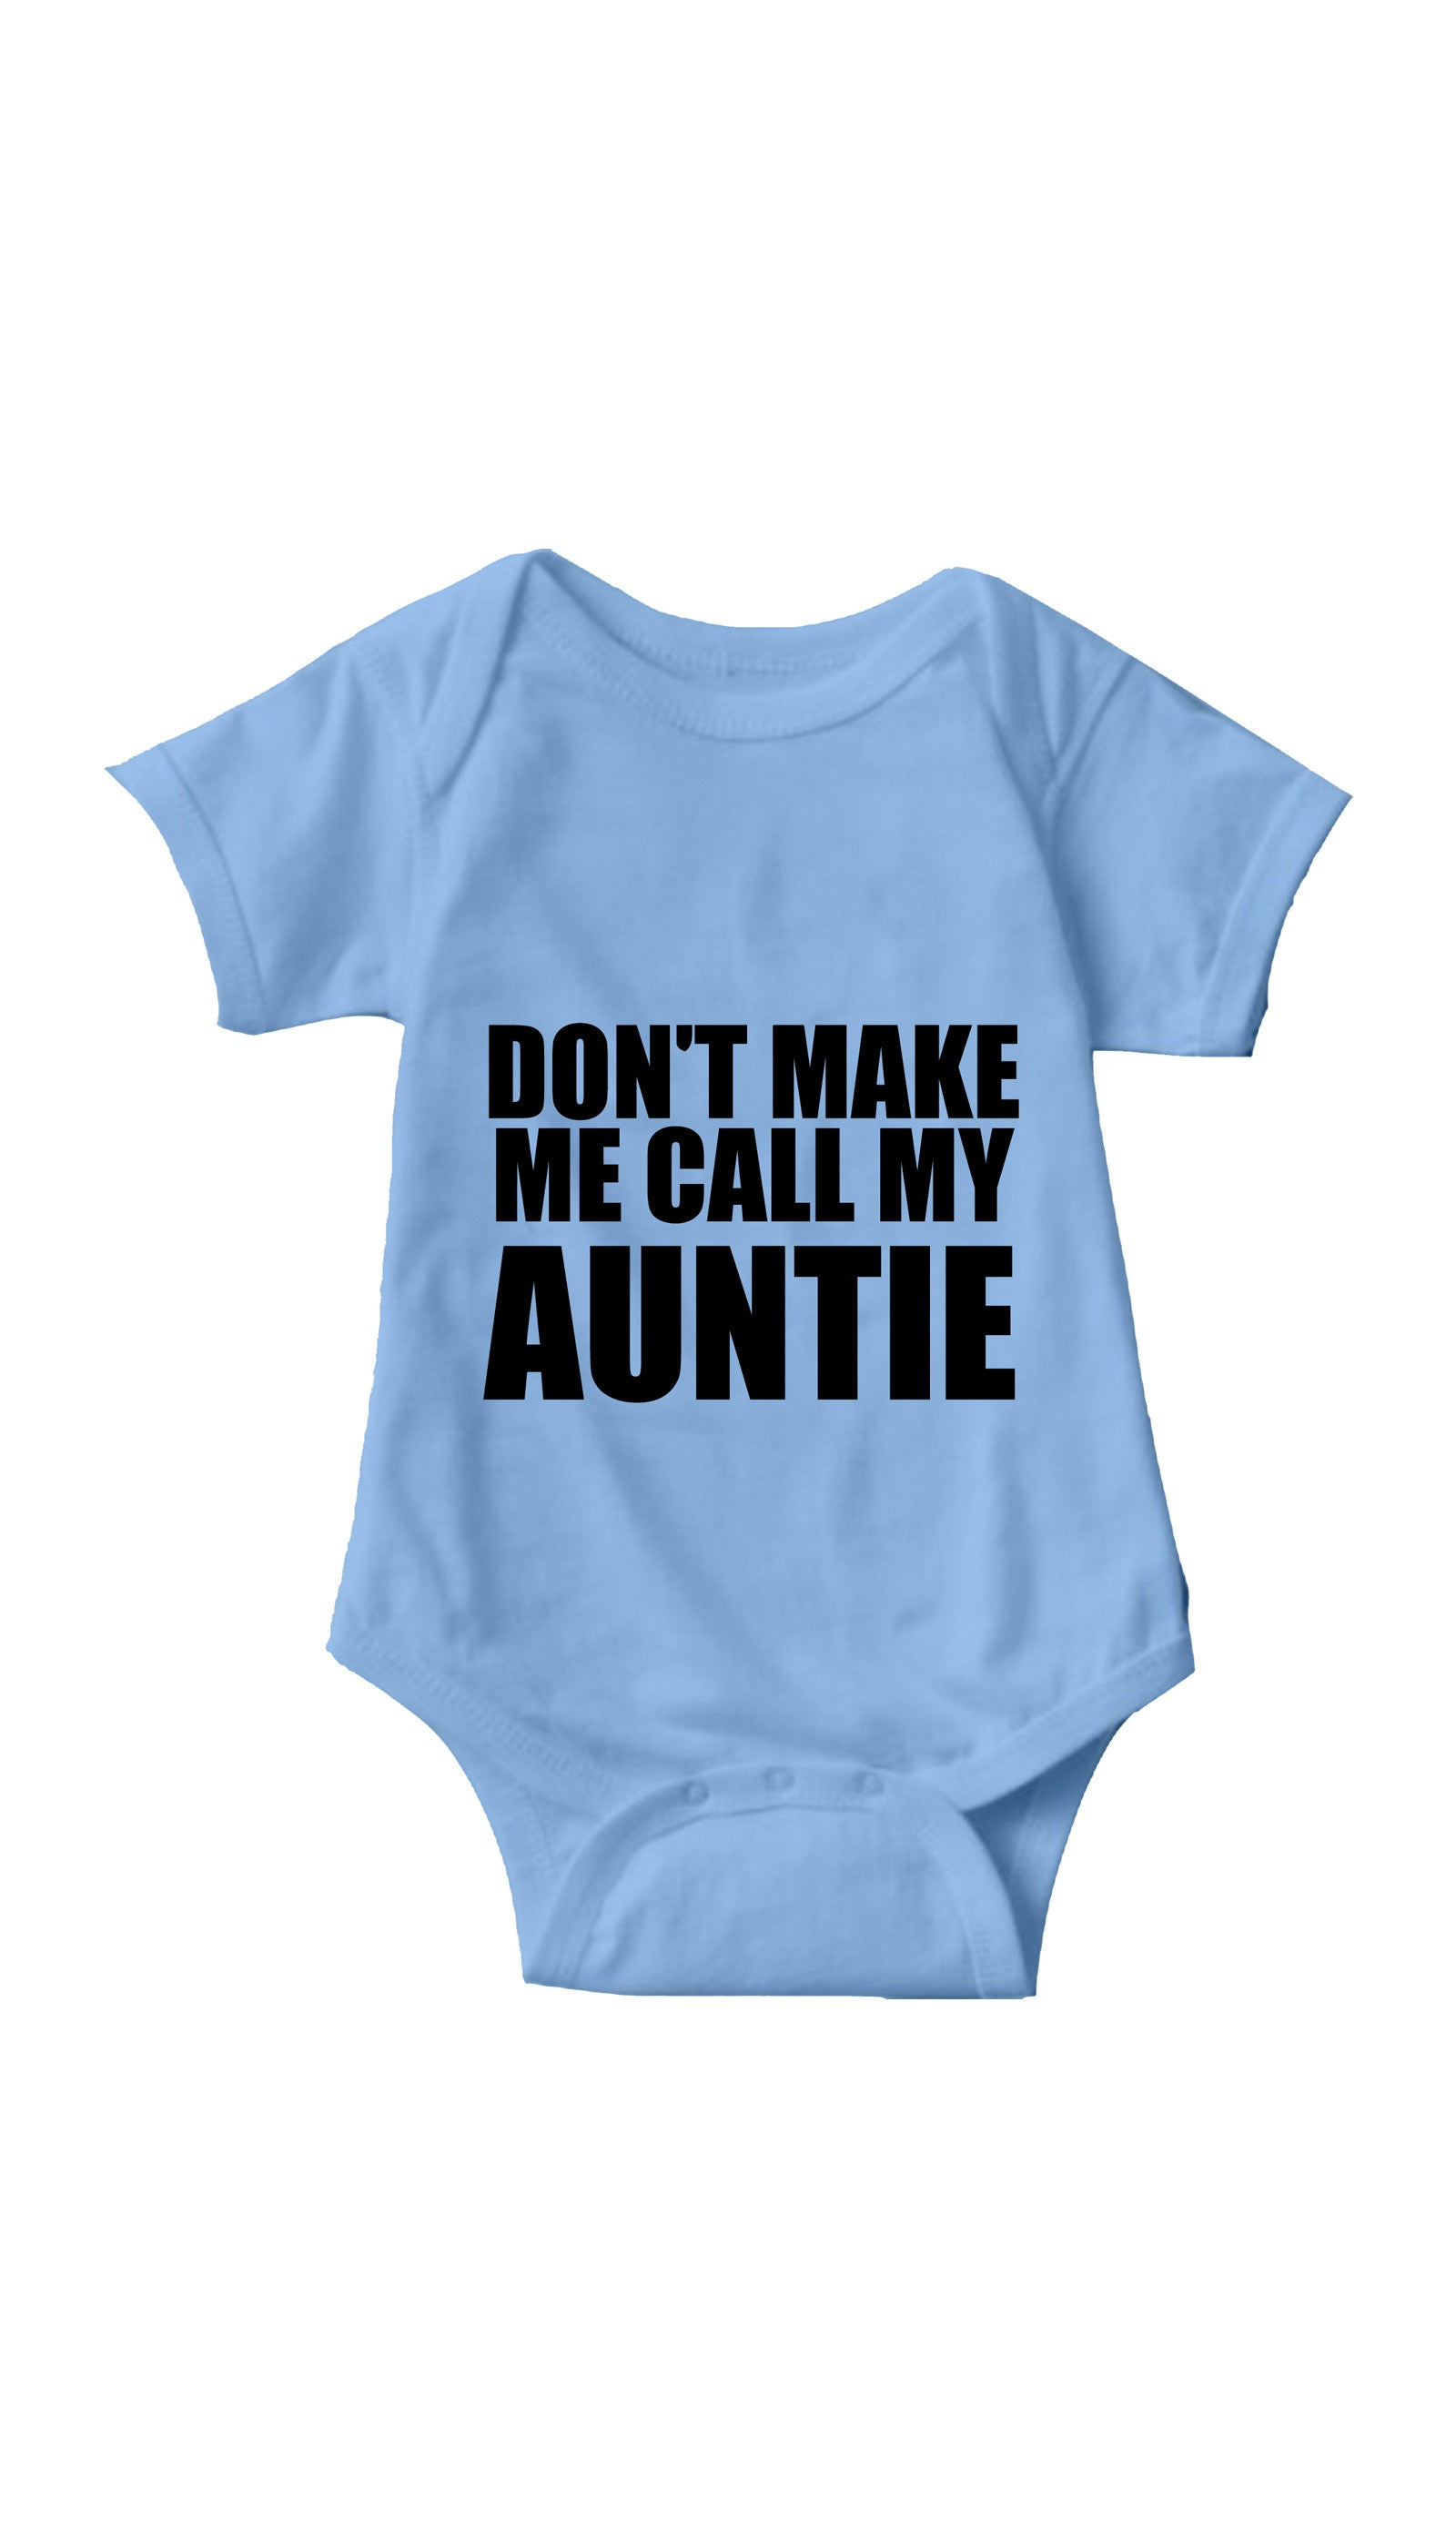 Don't Make Me Call My Auntie Light Blue Infant Onesie | Sarcastic ME